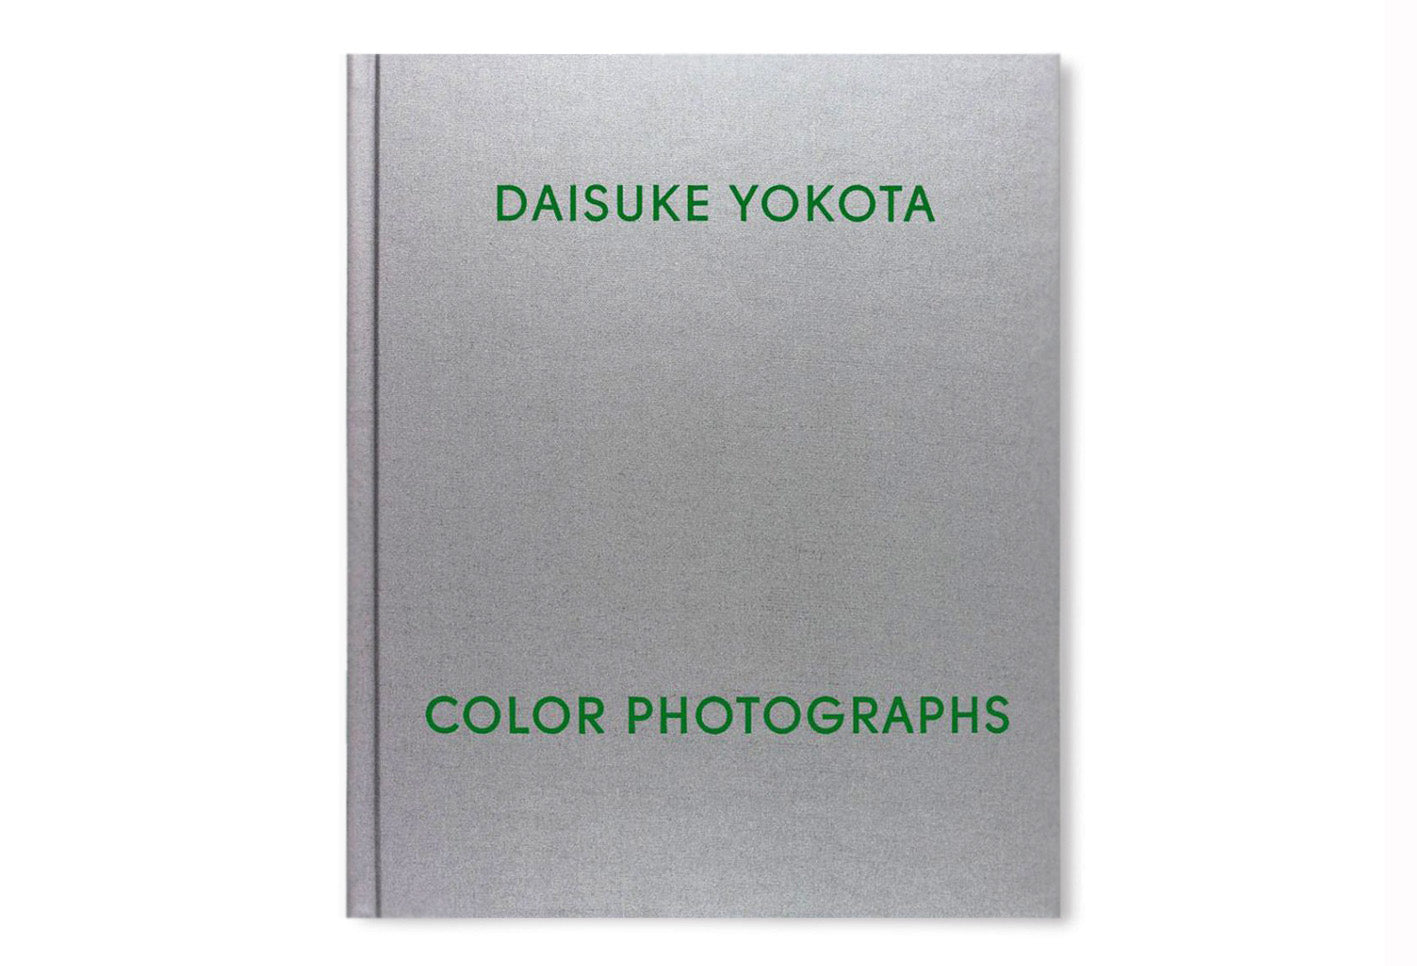 COLOR PHOTOGRAPHS - signed